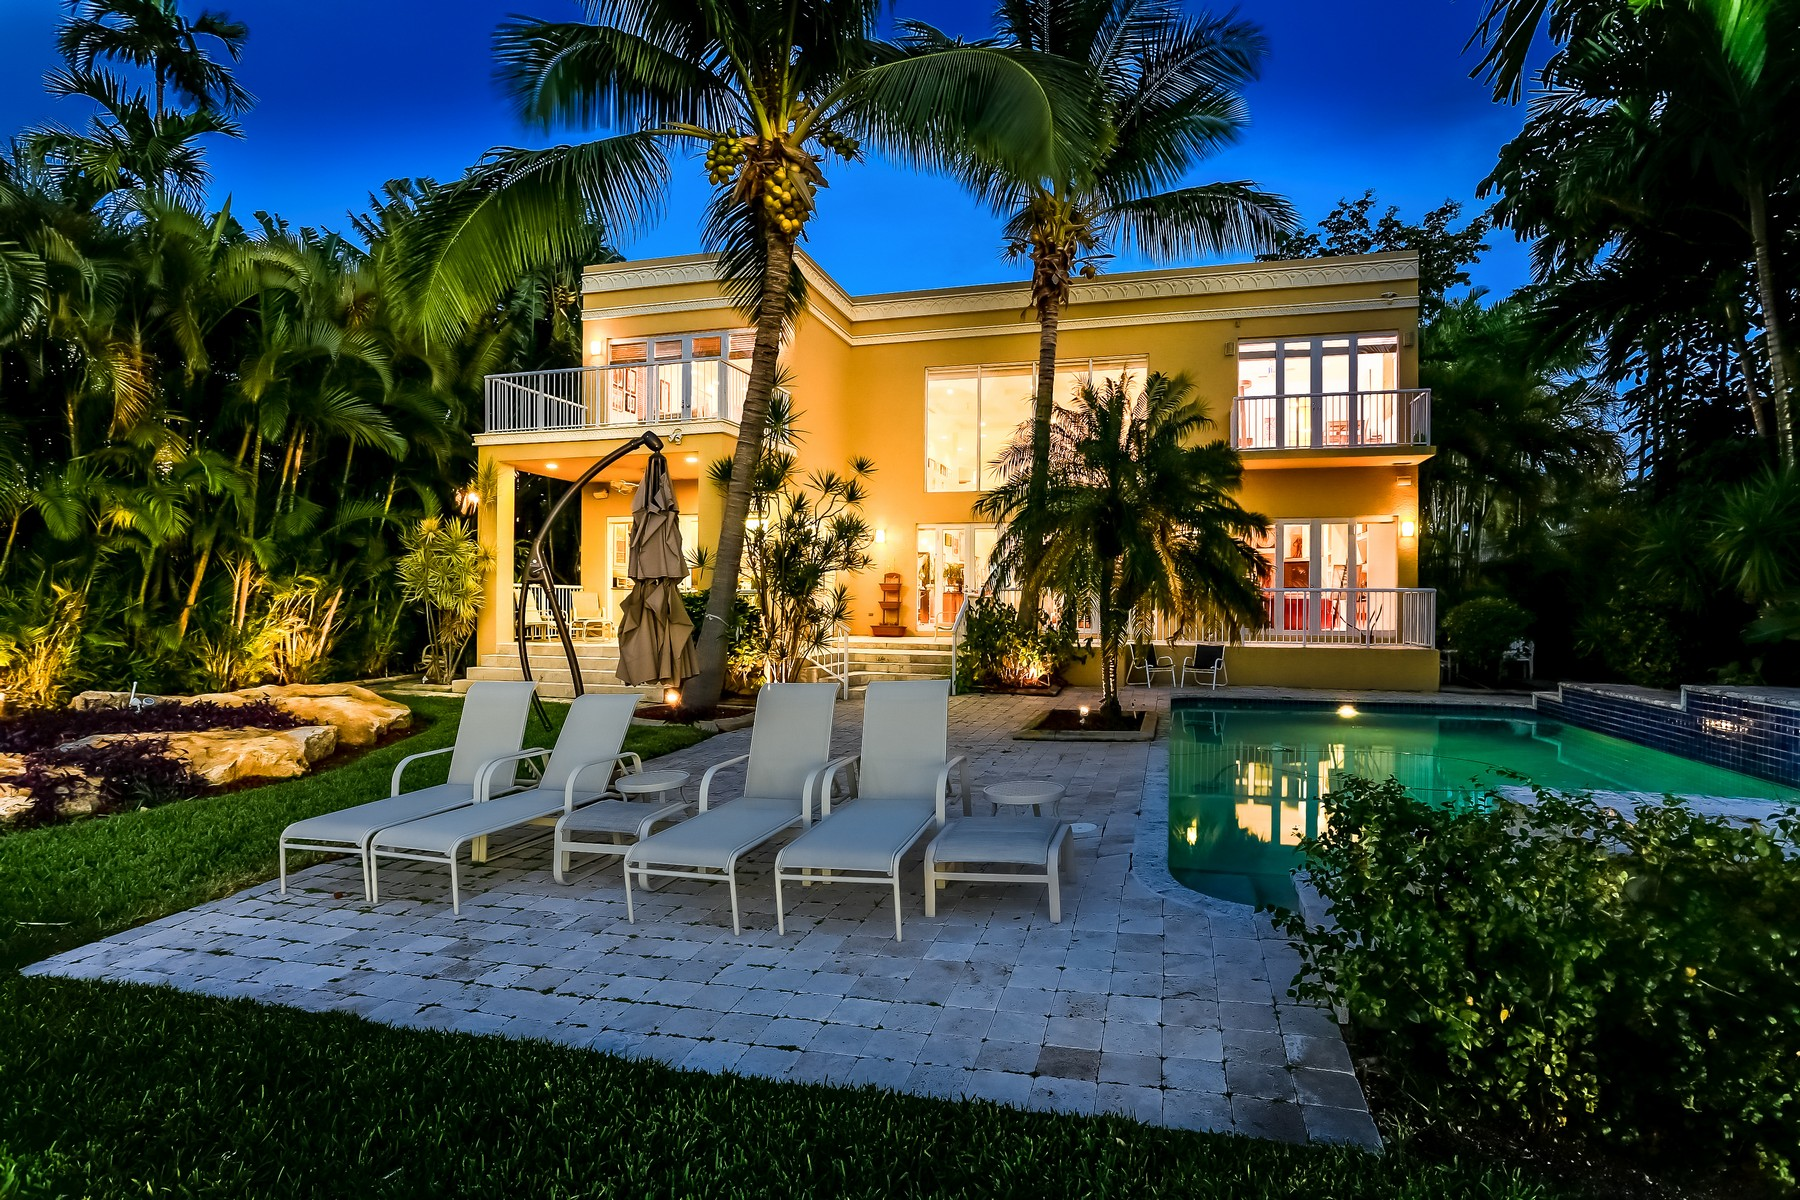 Single Family Home for Sale at 9814 W Broadview Dr Miami Beach, Florida 33154 United States